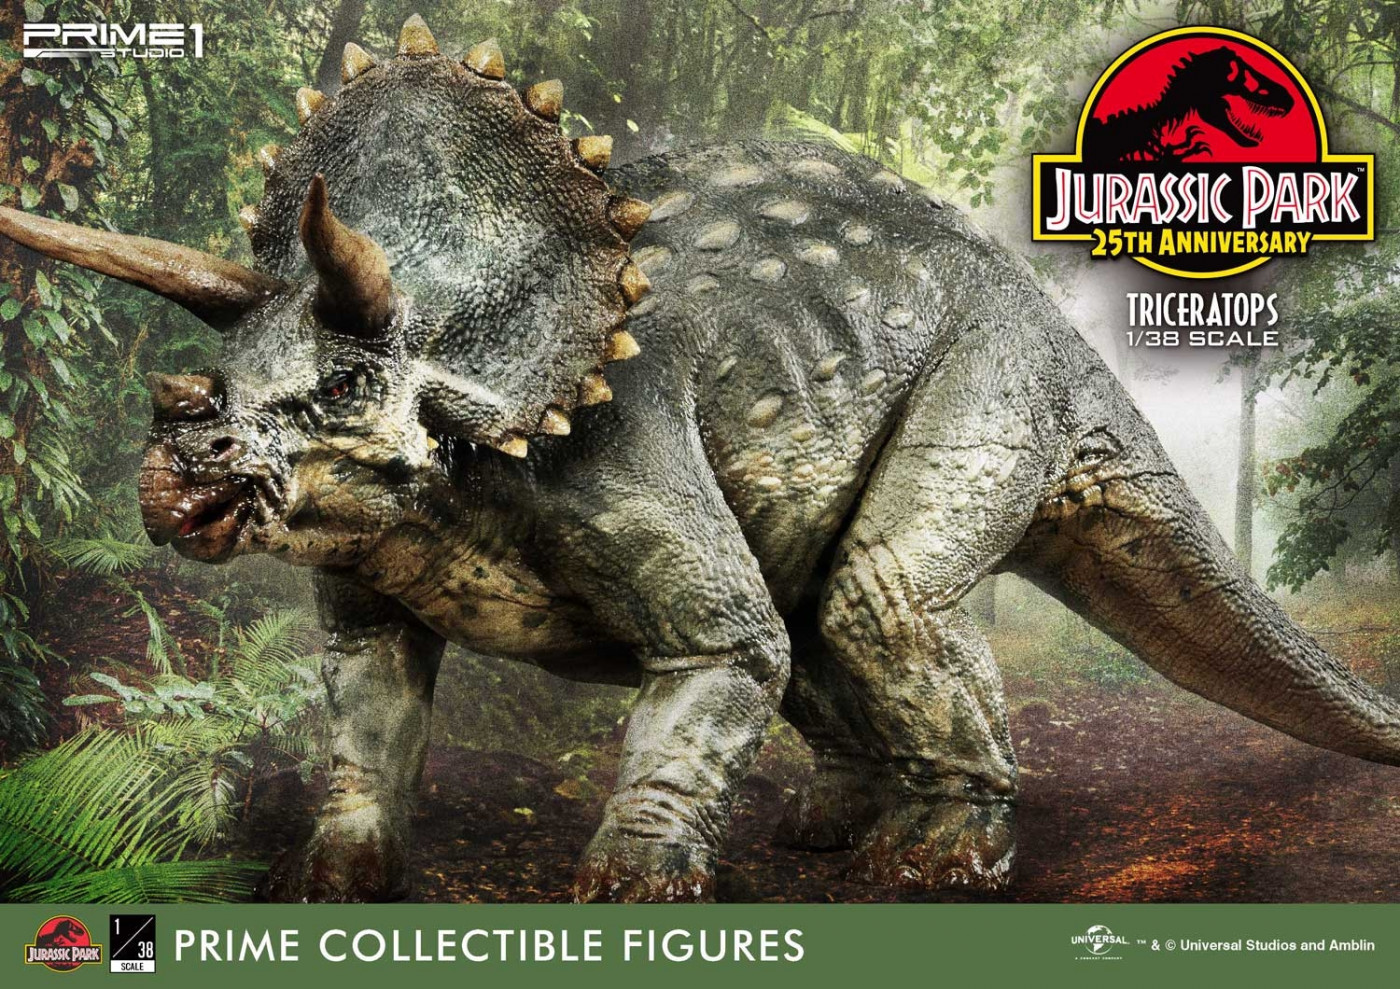 Prime Collectible Figures Jurassic Park (Film) Triceratops